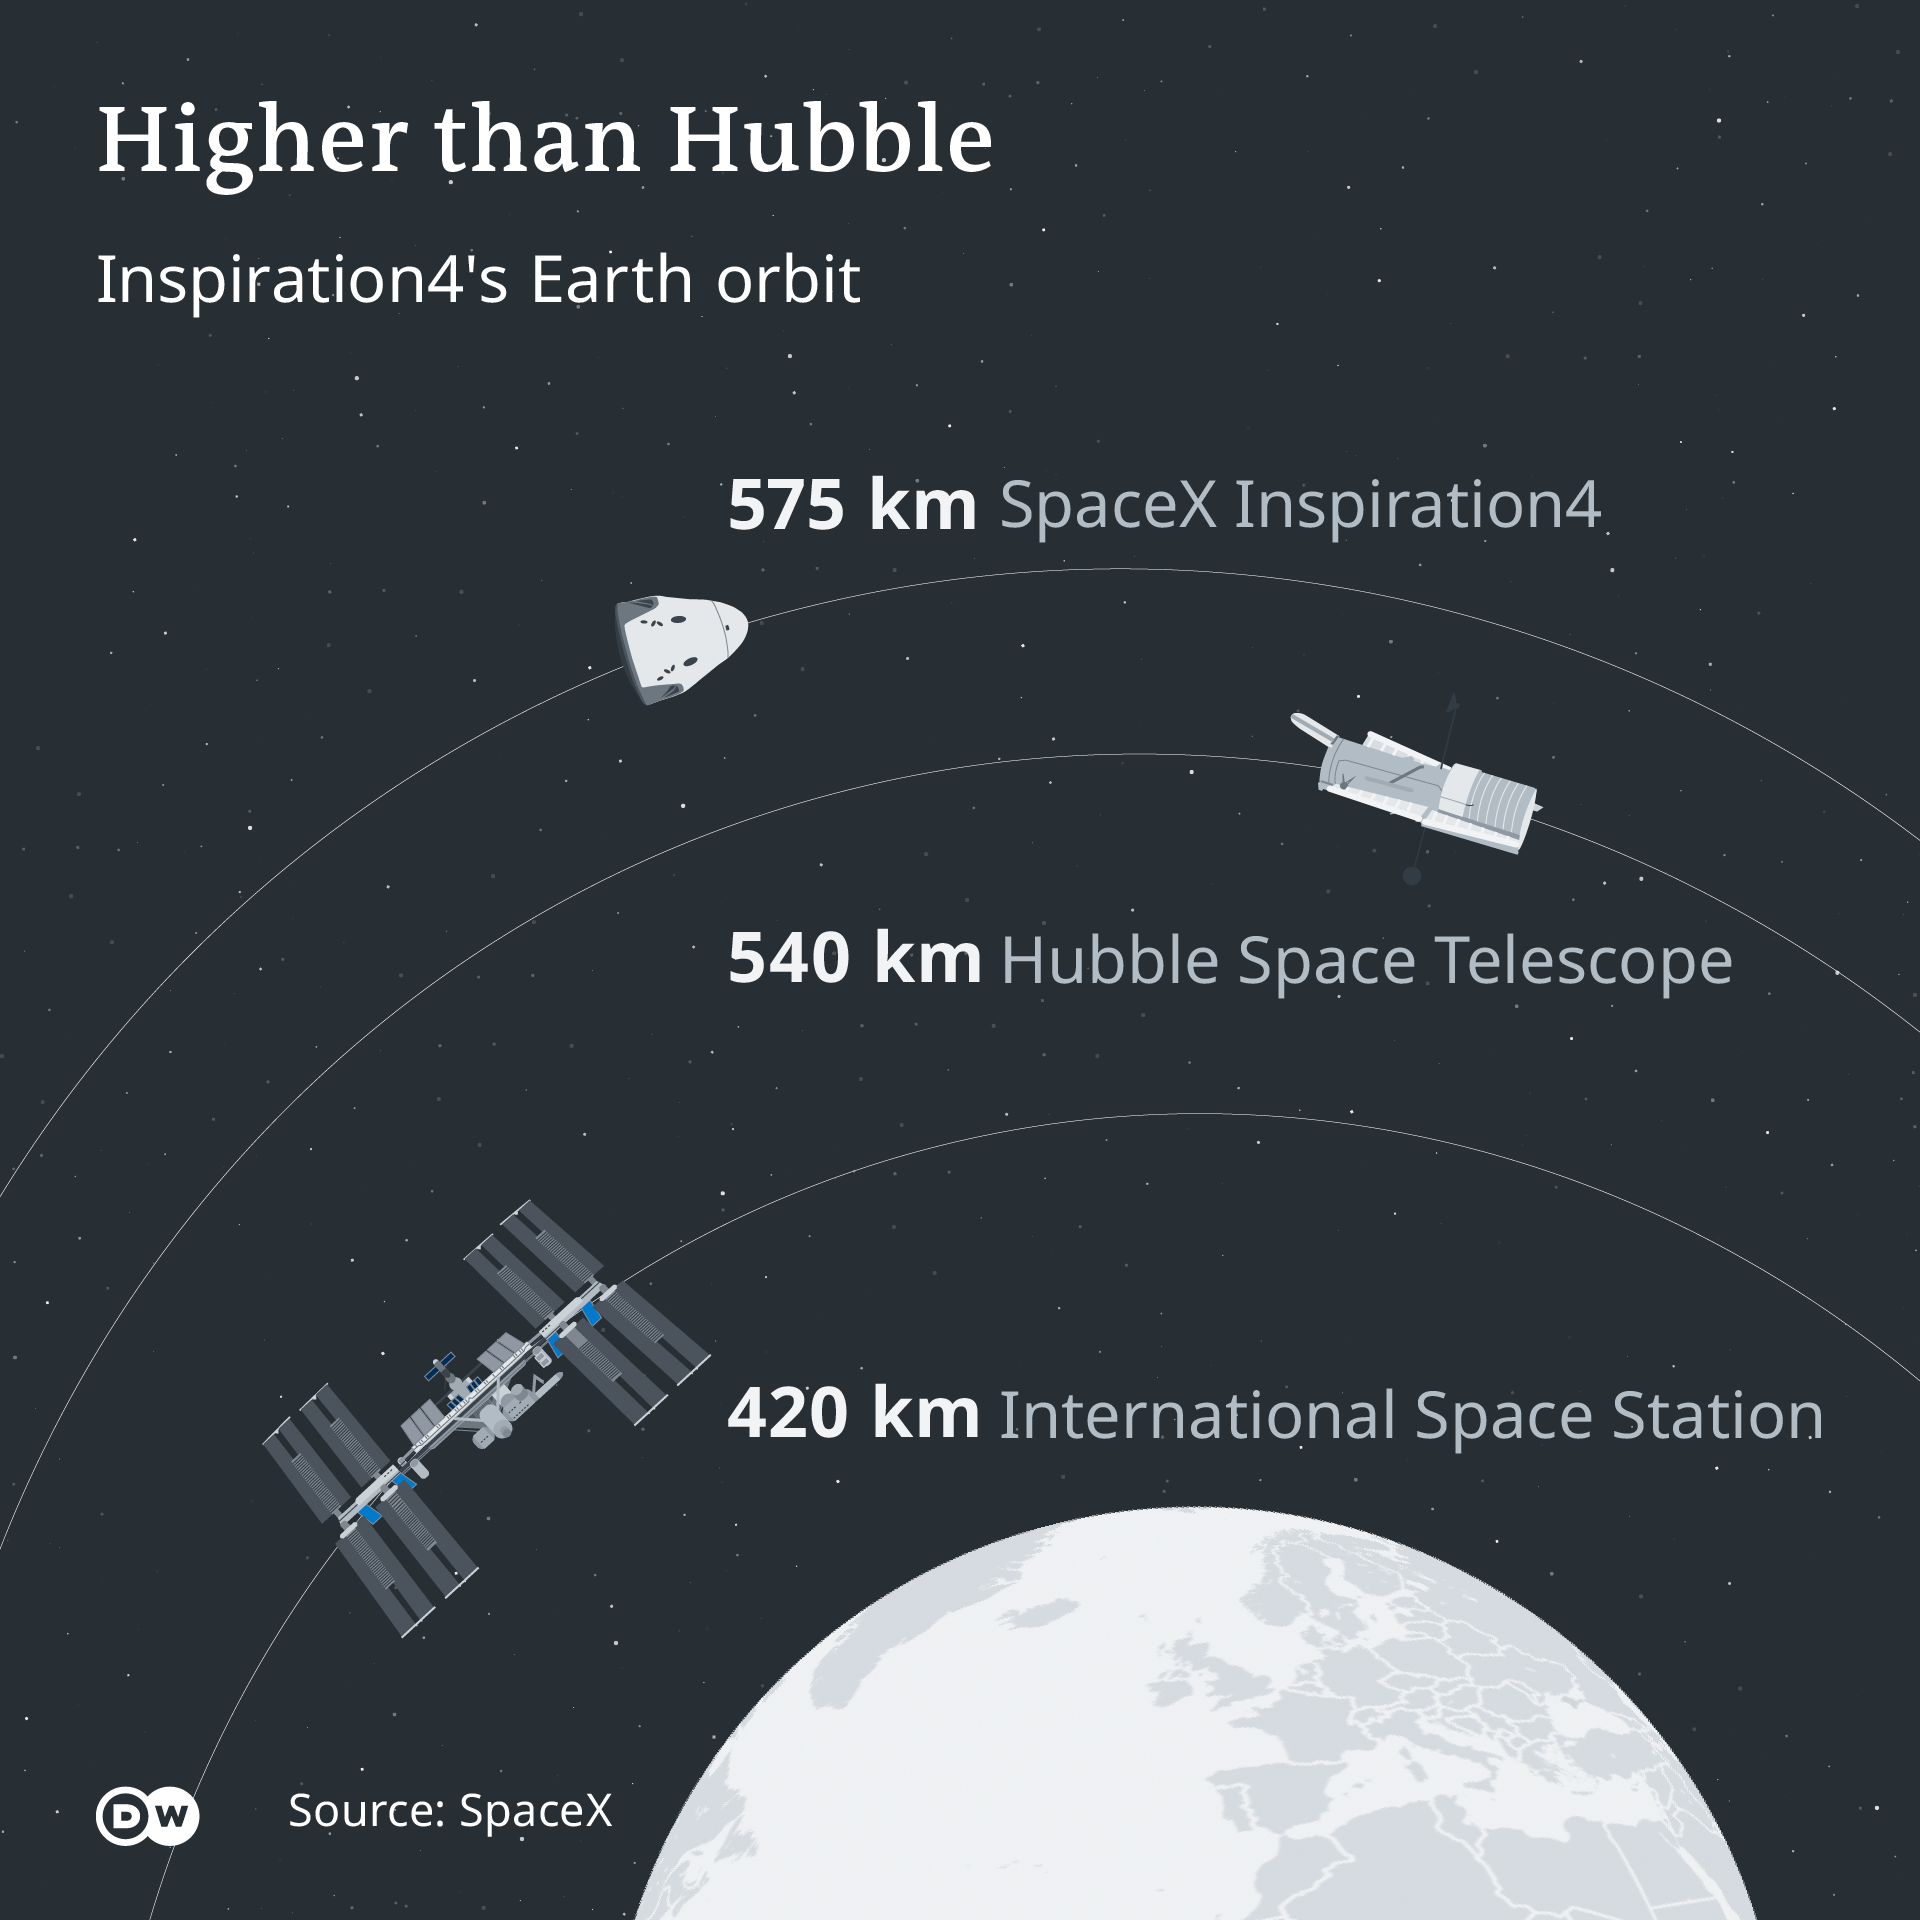 Infofraphic illustrating the Earth orbit of SpaceX's Inspiration4 mission